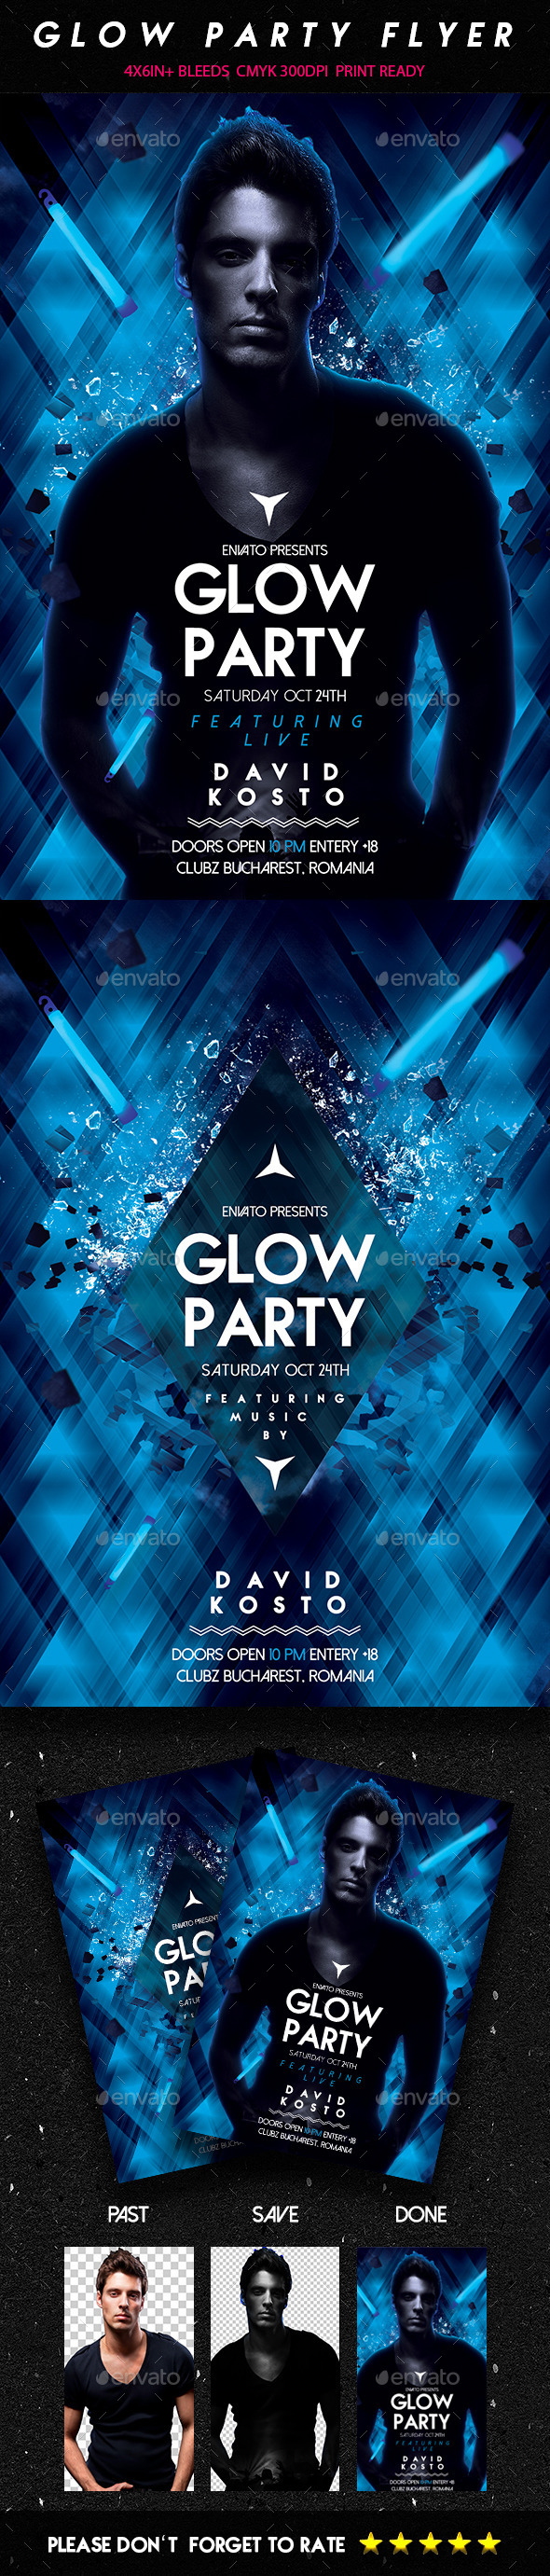 GraphicRiver Glow Party Flyer 8929488